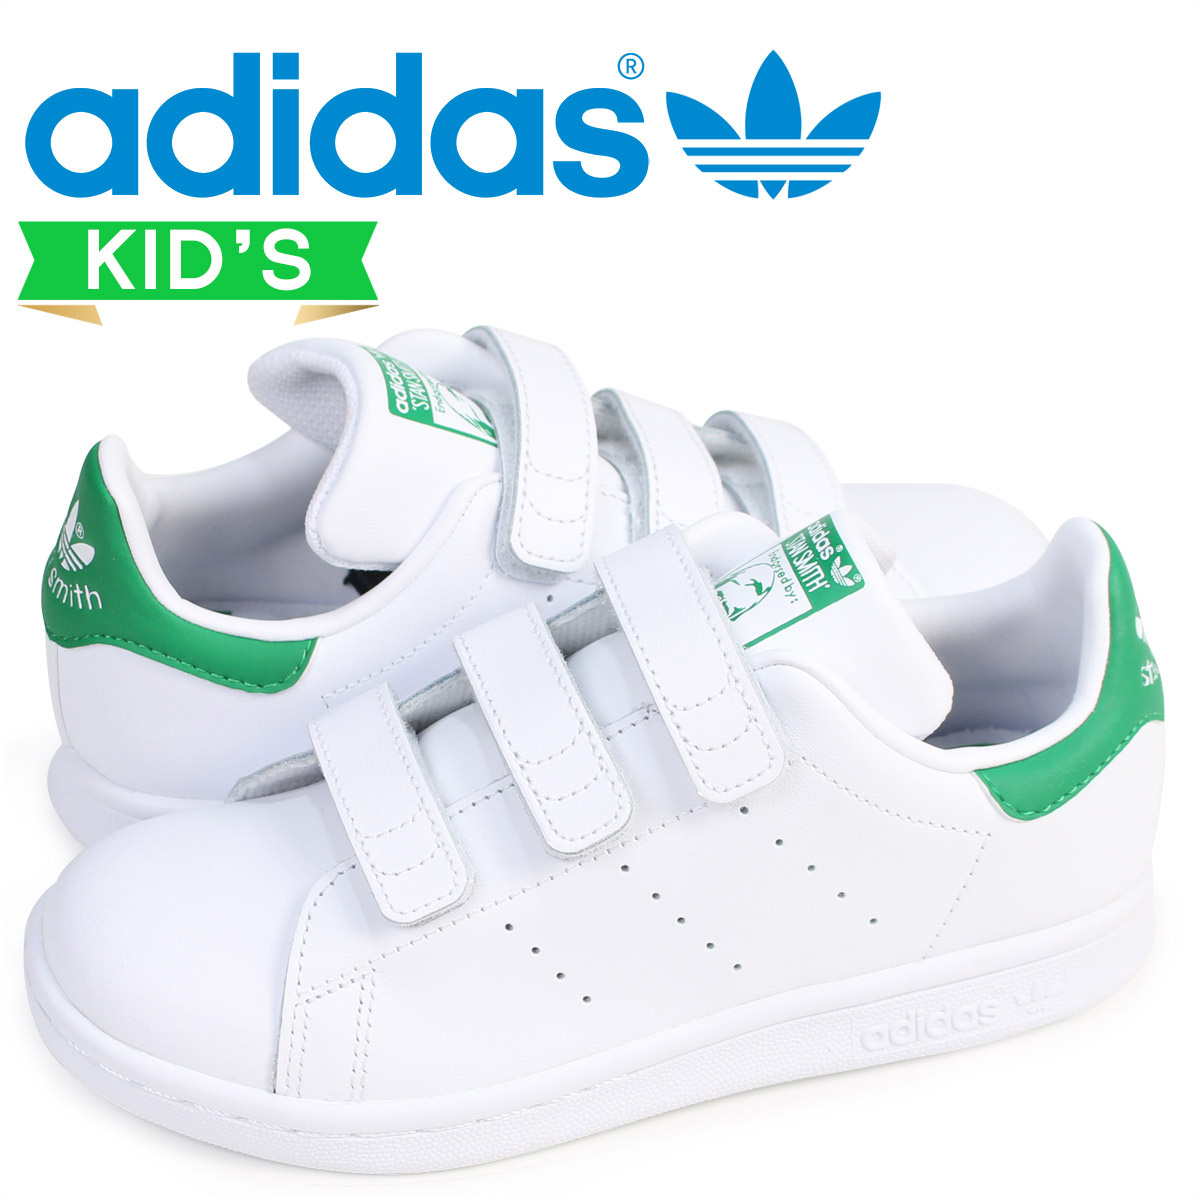 finest selection de76d 6aa44 adidas Originals Adidas originals Stan Smith Velcro sneakers kids STAN  SMITH CF C white white M20607 [the 8/21 additional arrival]